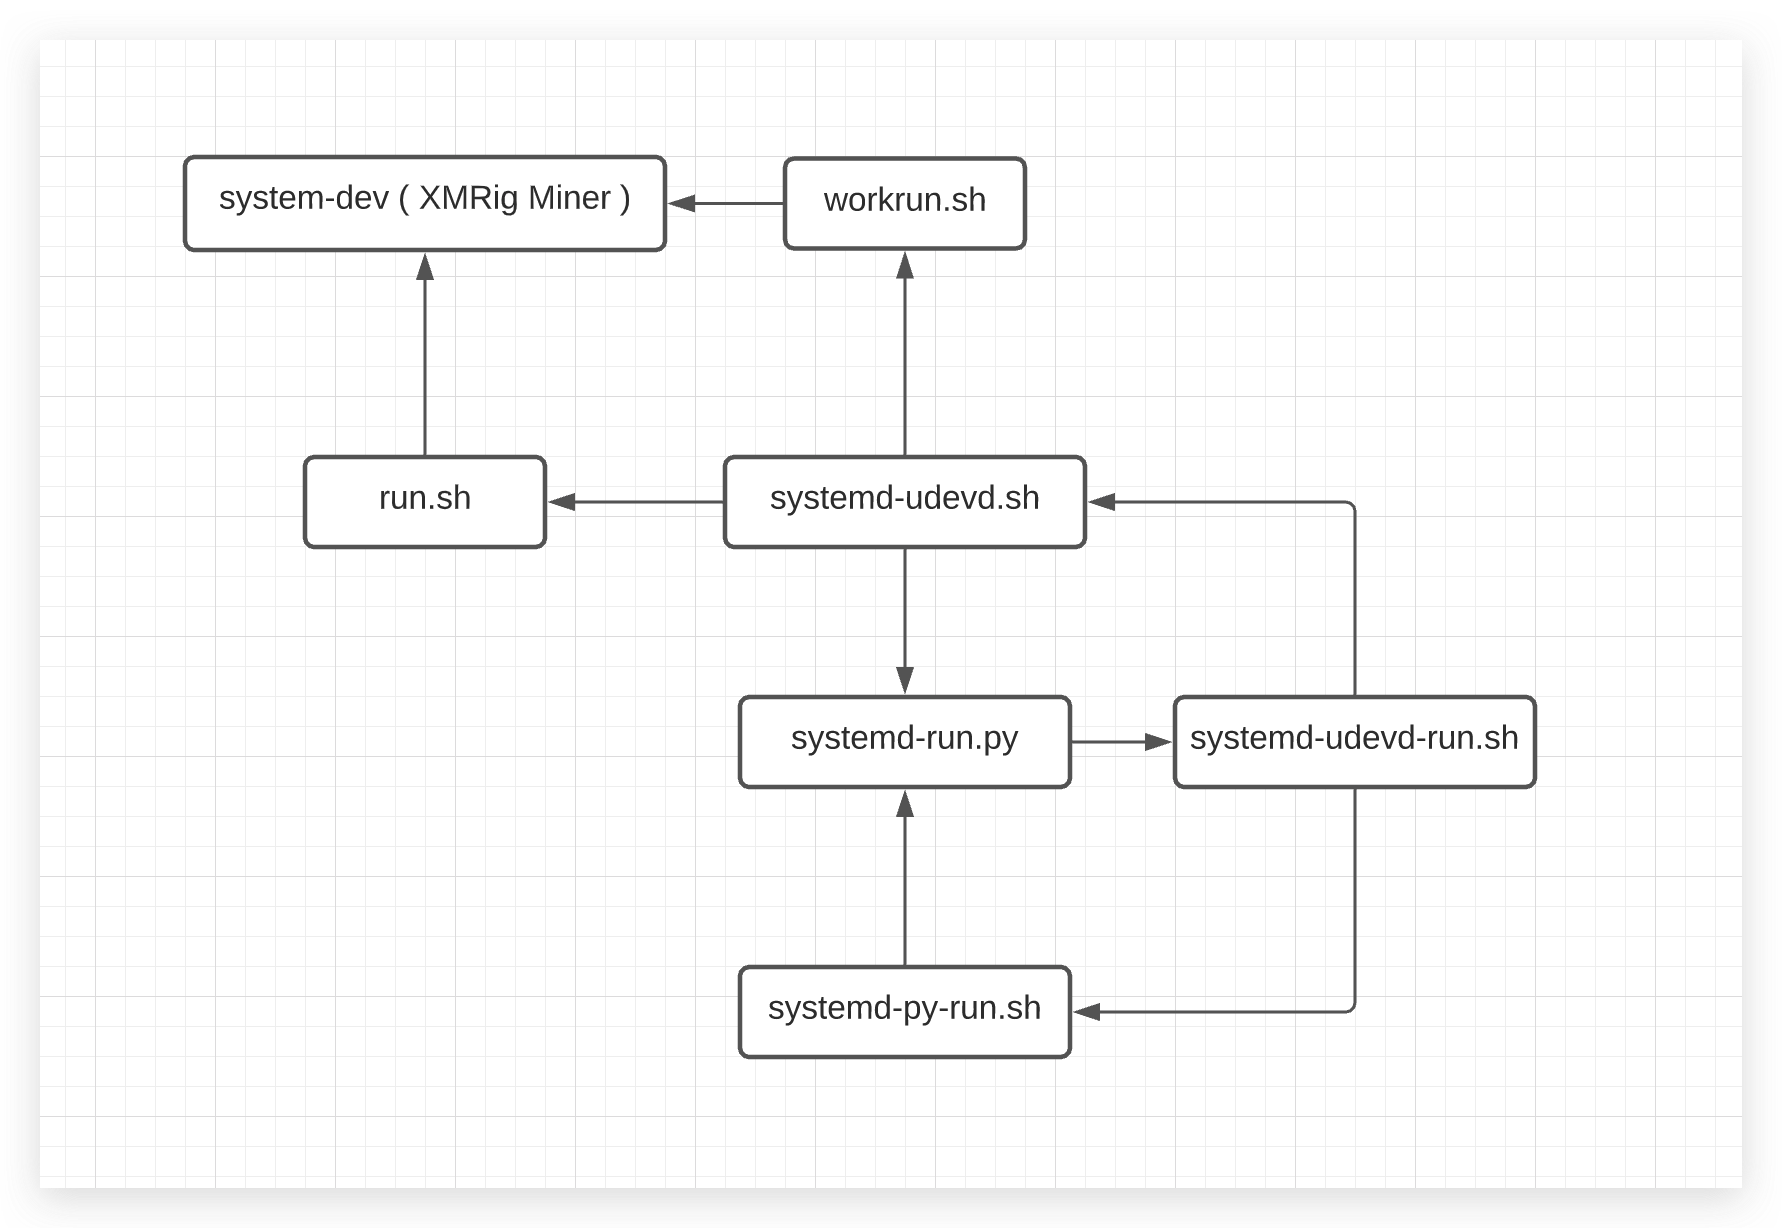 The image depicts a flowchart with boxes containing the names of scripts all interconnected